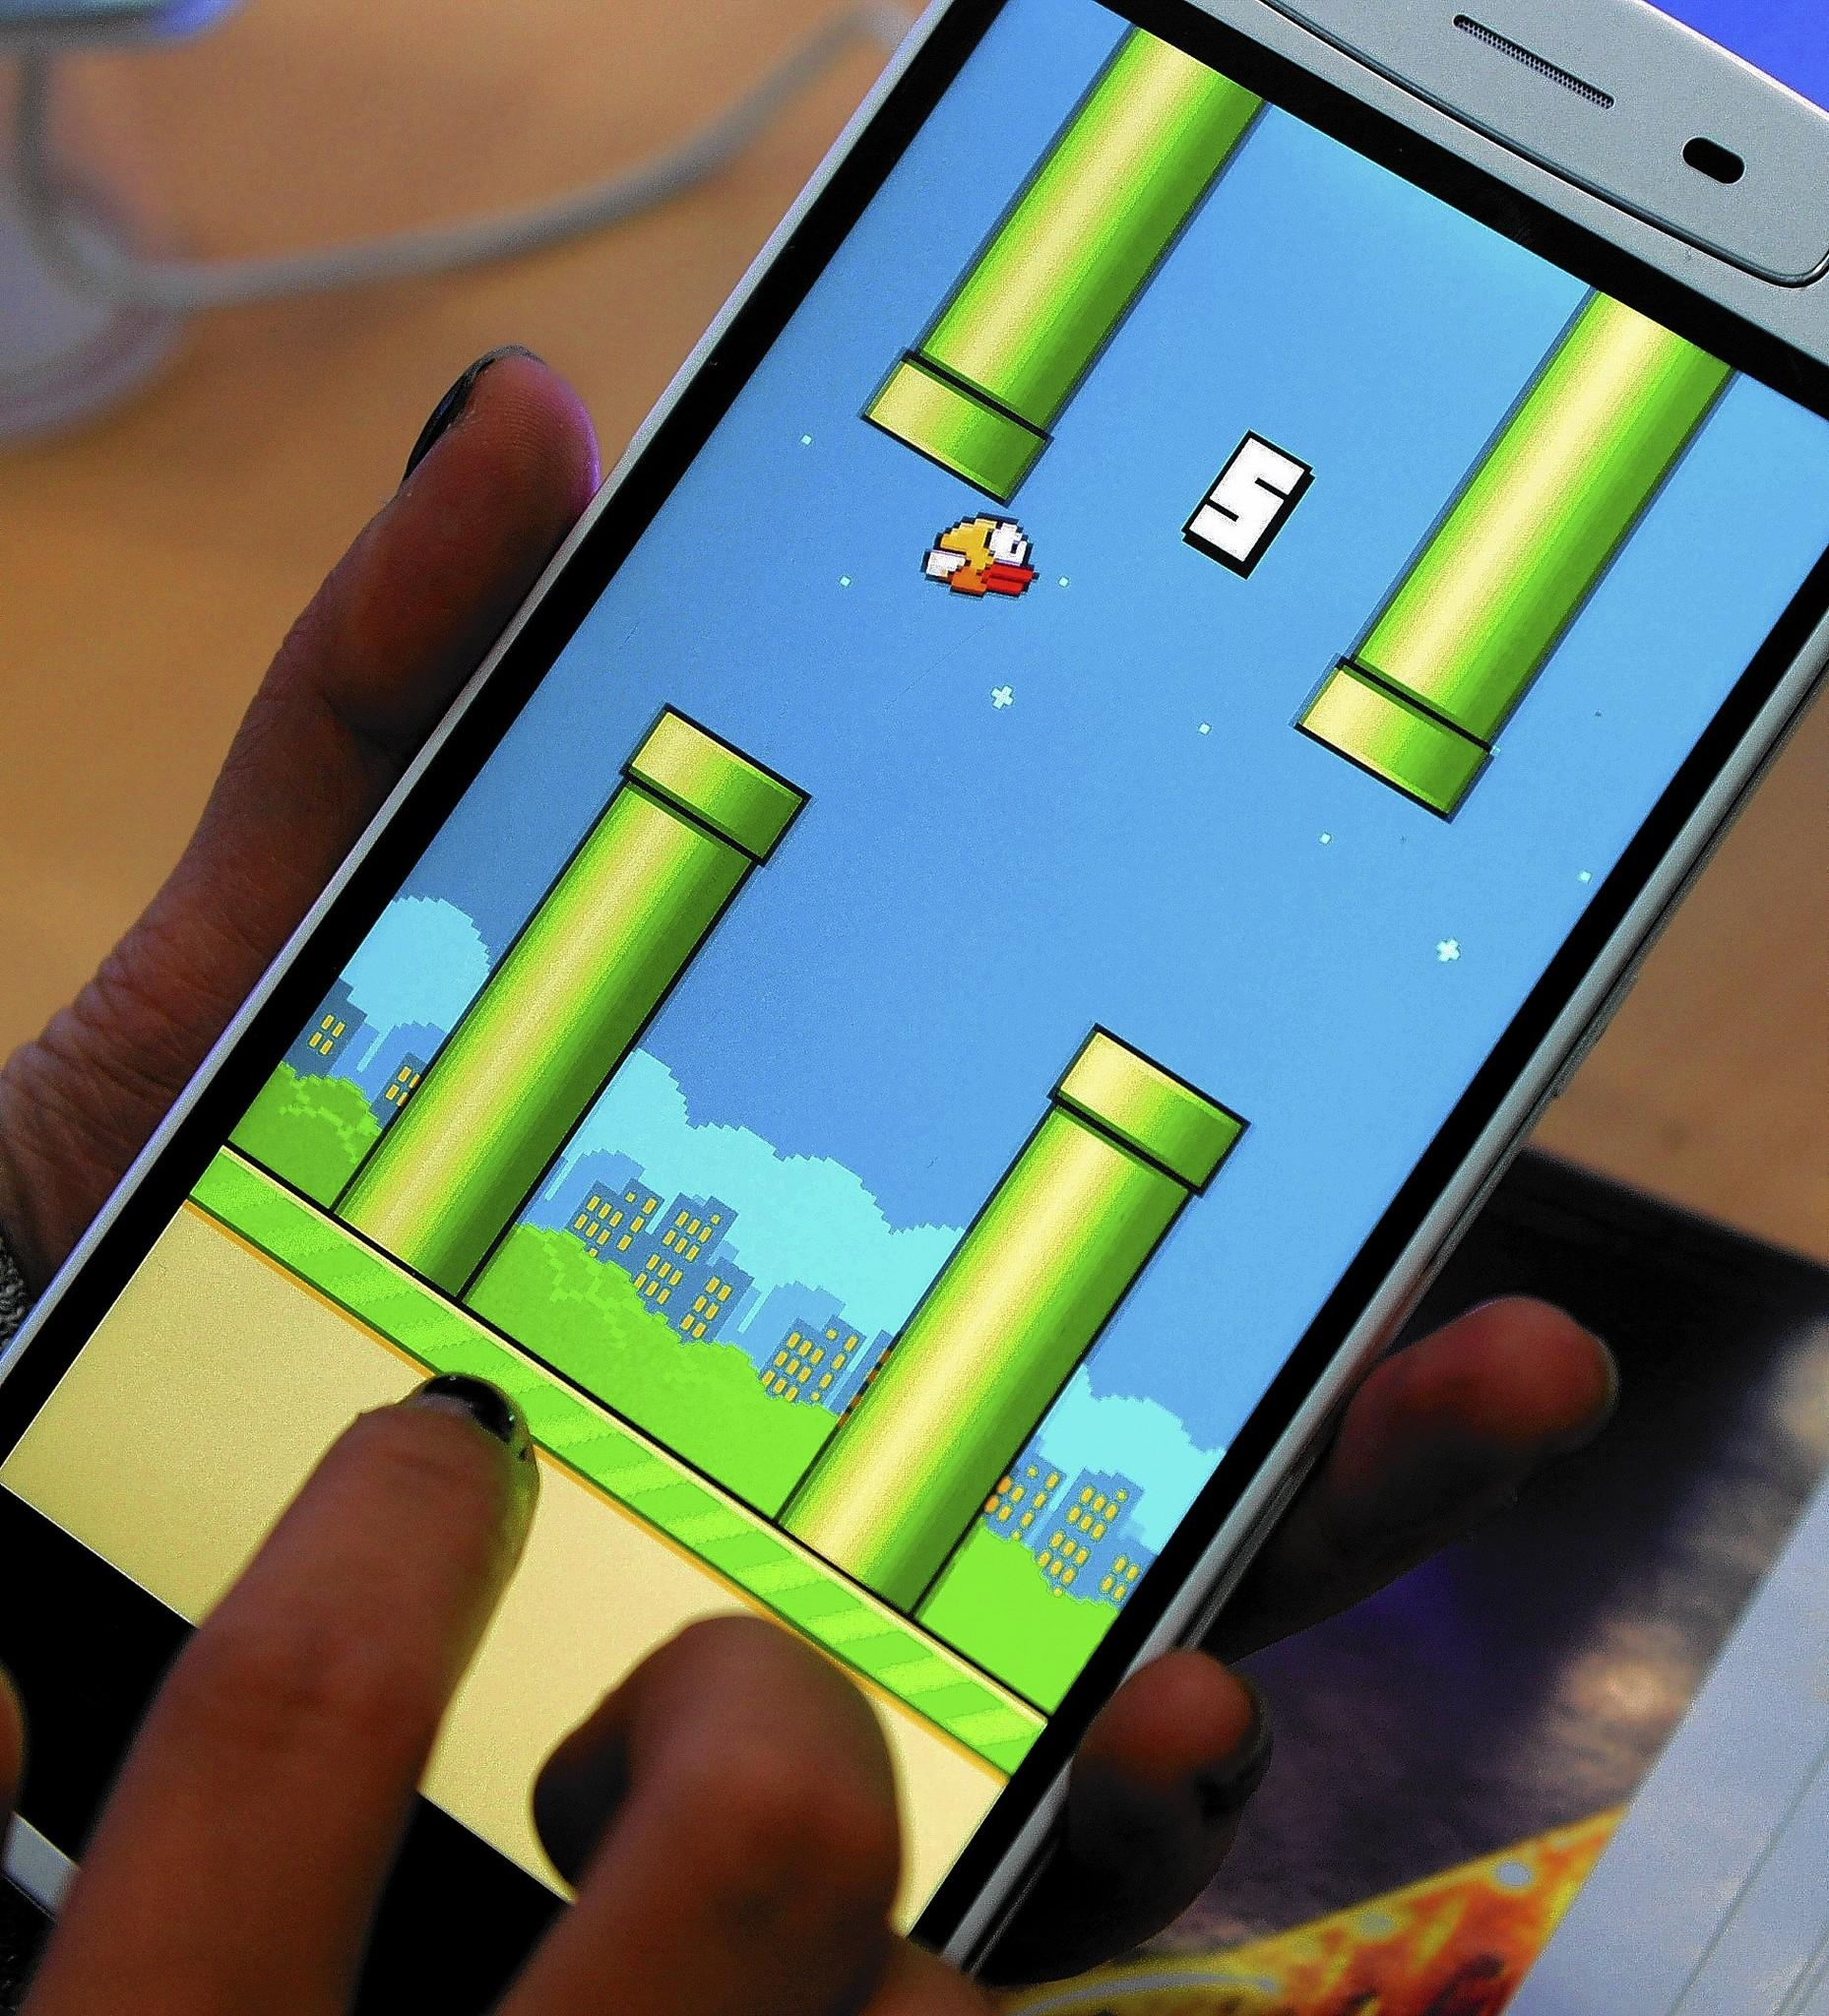 """The Vietnamese developer behind the smash-hit free game Flappy Bird has pulled his creation from online stores after announcing that its runaway success had ruined his """"simple life."""""""